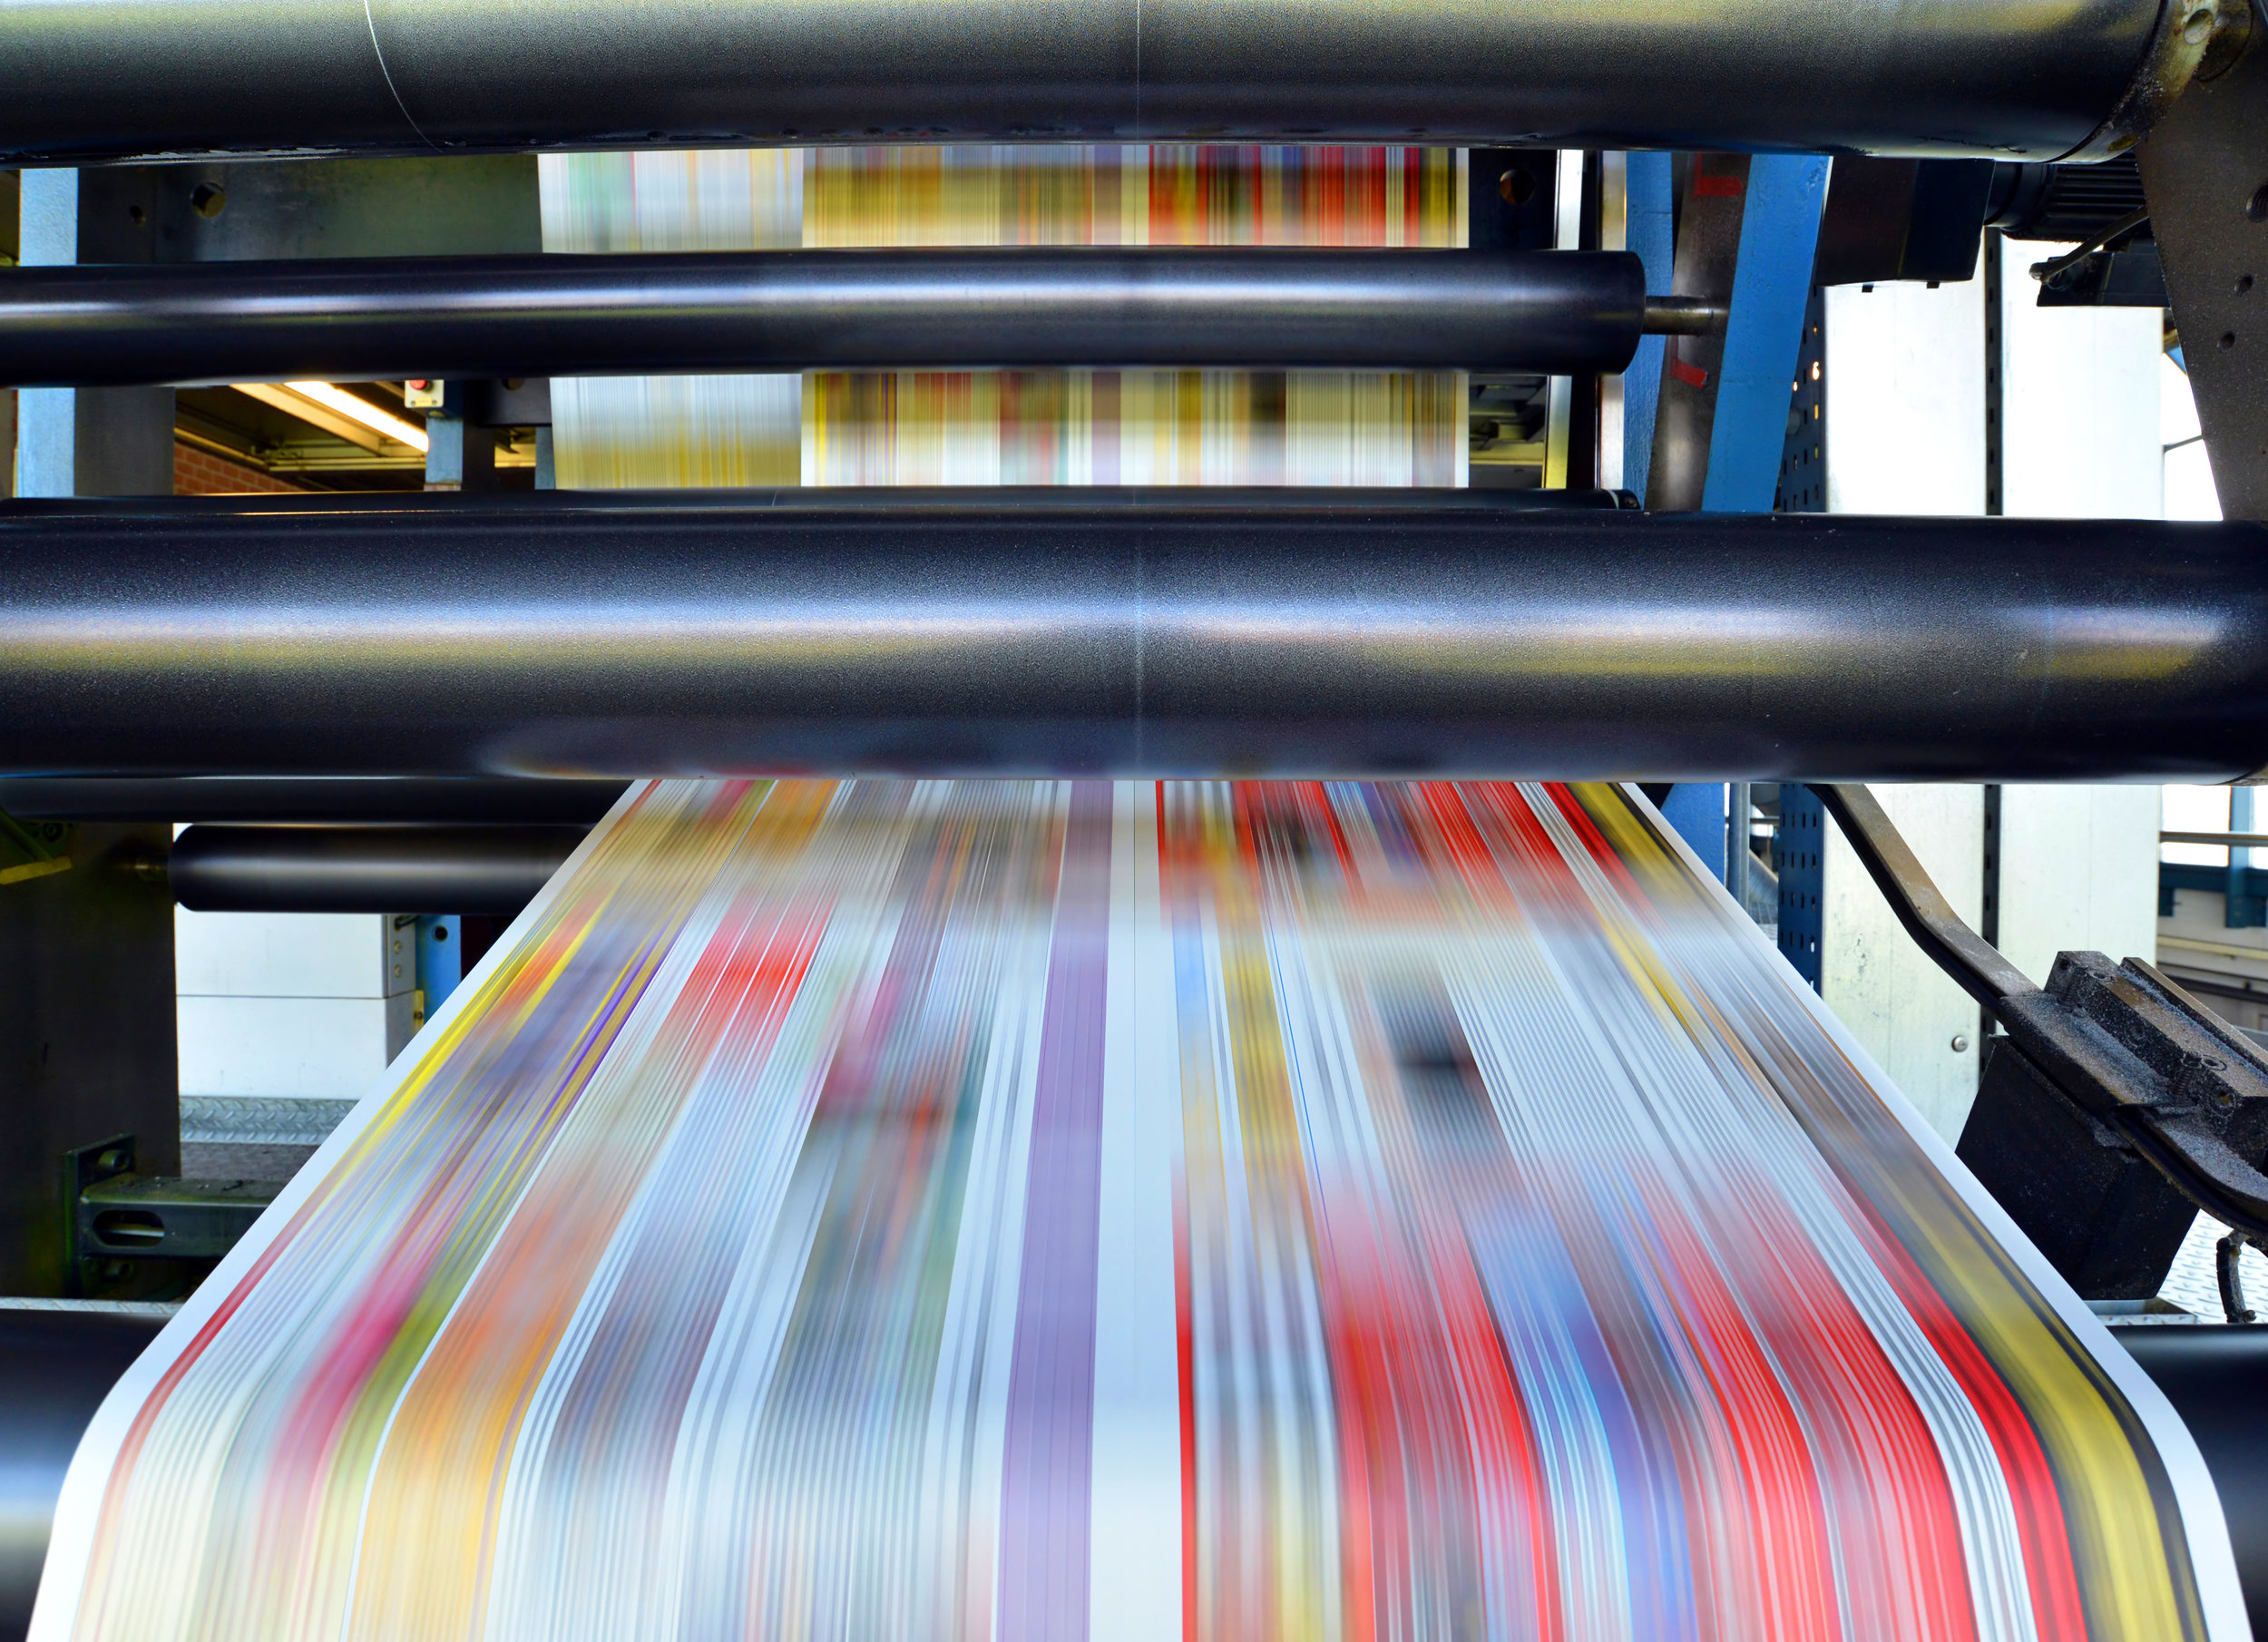 Task by Kirk Group delivers next generation print services to leading FMCG brands in Australia and New Zealand for high quality digital, flexo and gravure printing.